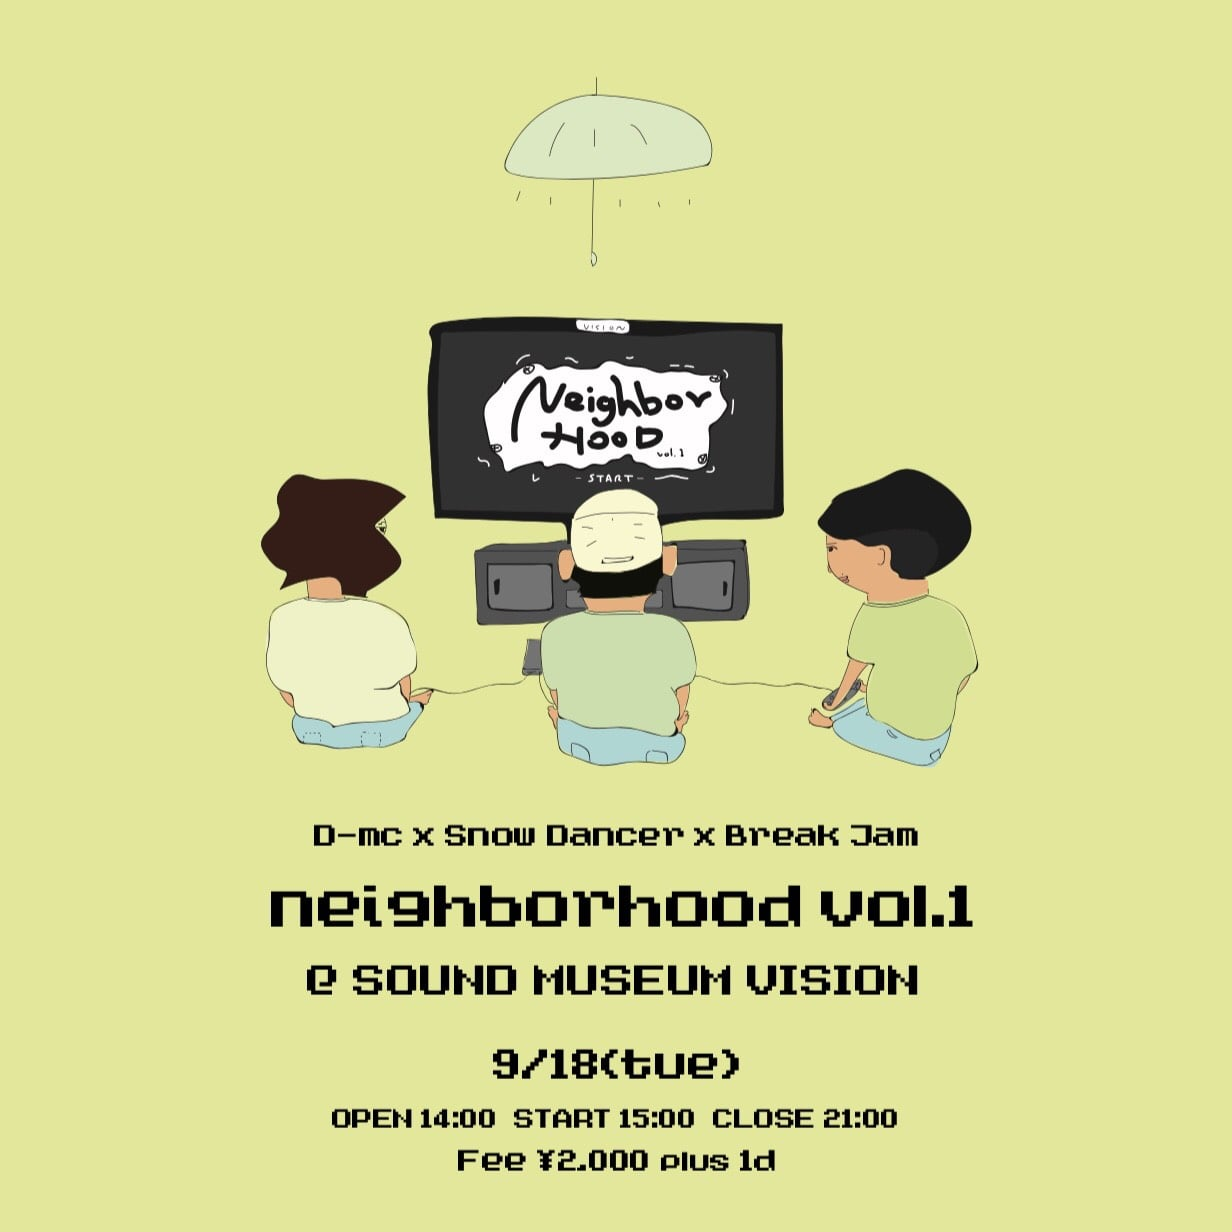 neighborhood vol.1